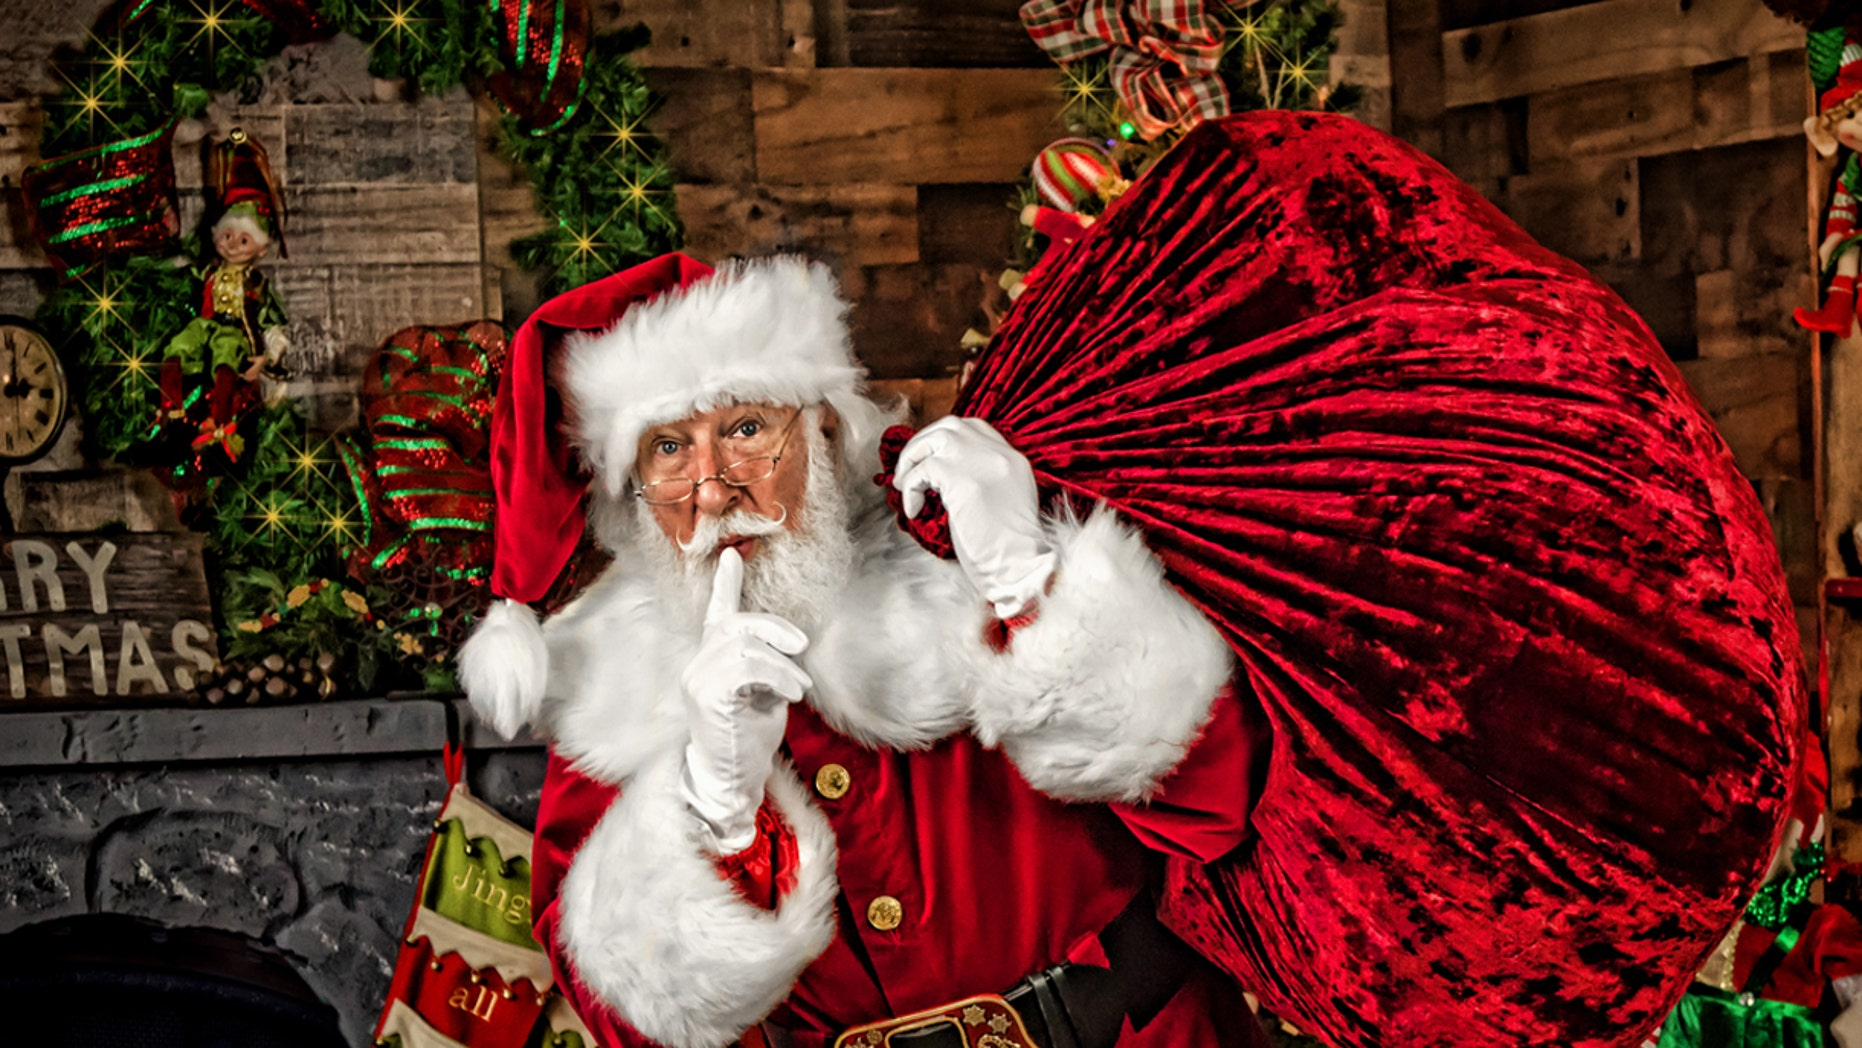 Does Santa need an upgrade? Some people say yes, according to a new survey.